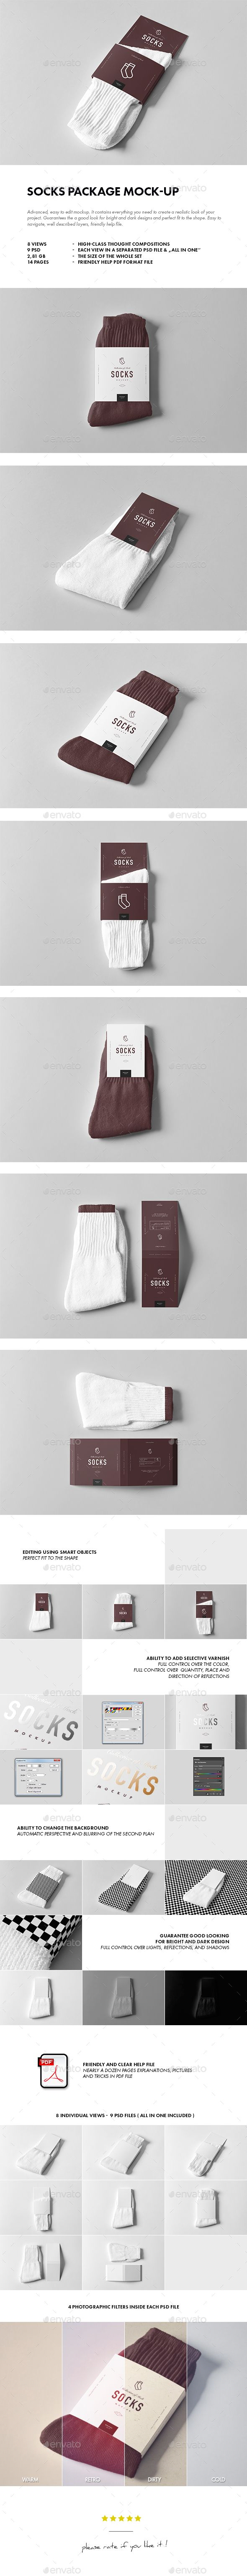 Socks Package Mockup — Photoshop PSD #cardboard #ankle • Download ➝ https://graphicriver.net/item/socks-package-mockup/19837616?ref=pxcr